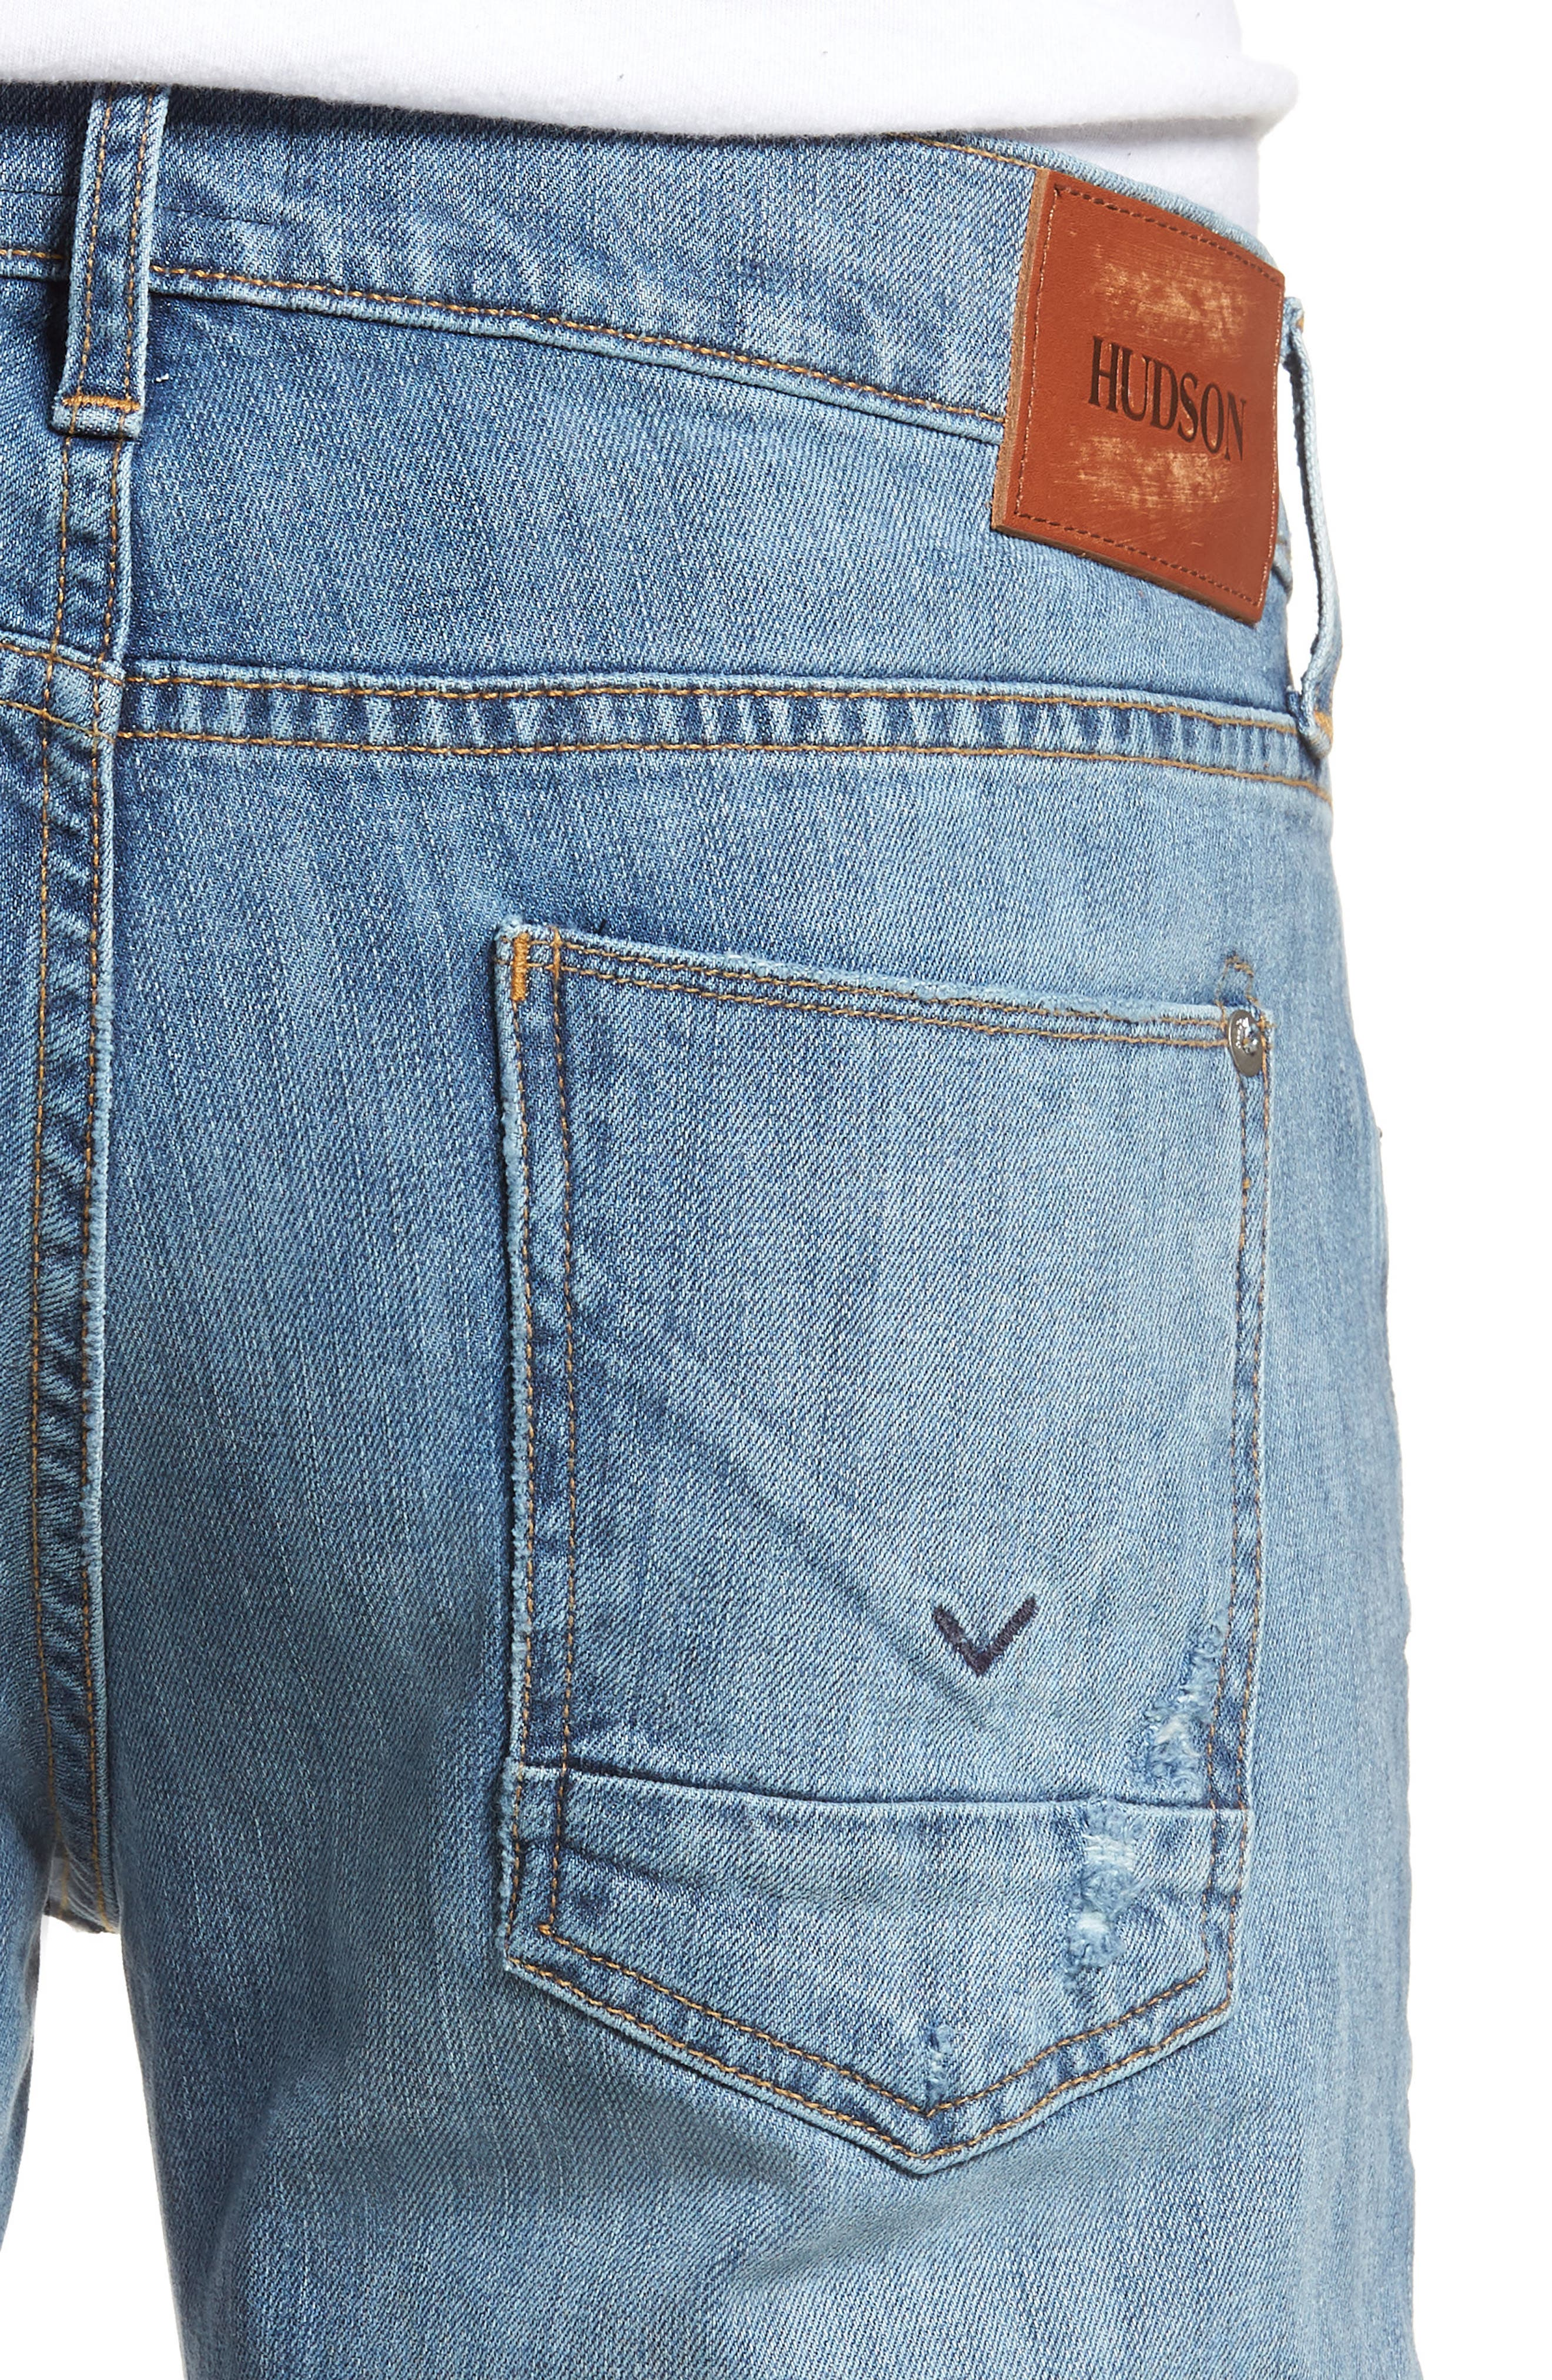 Byron Slim Straight Fit Jeans,                             Alternate thumbnail 4, color,                             425